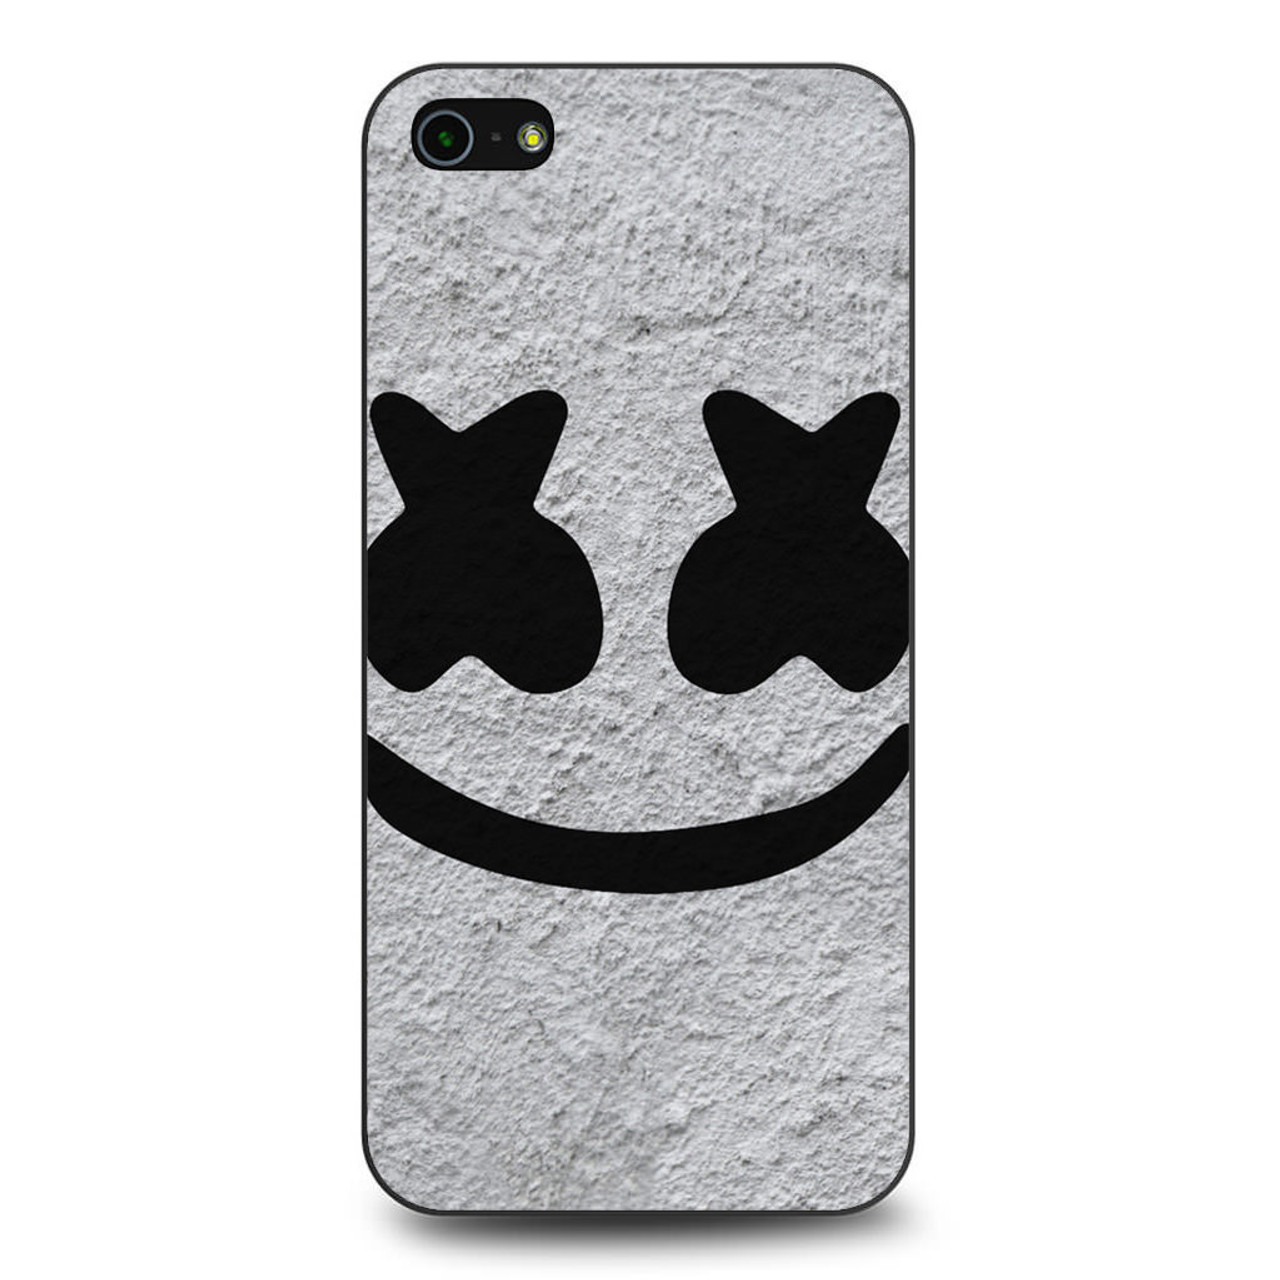 marshmello logo iphone 5